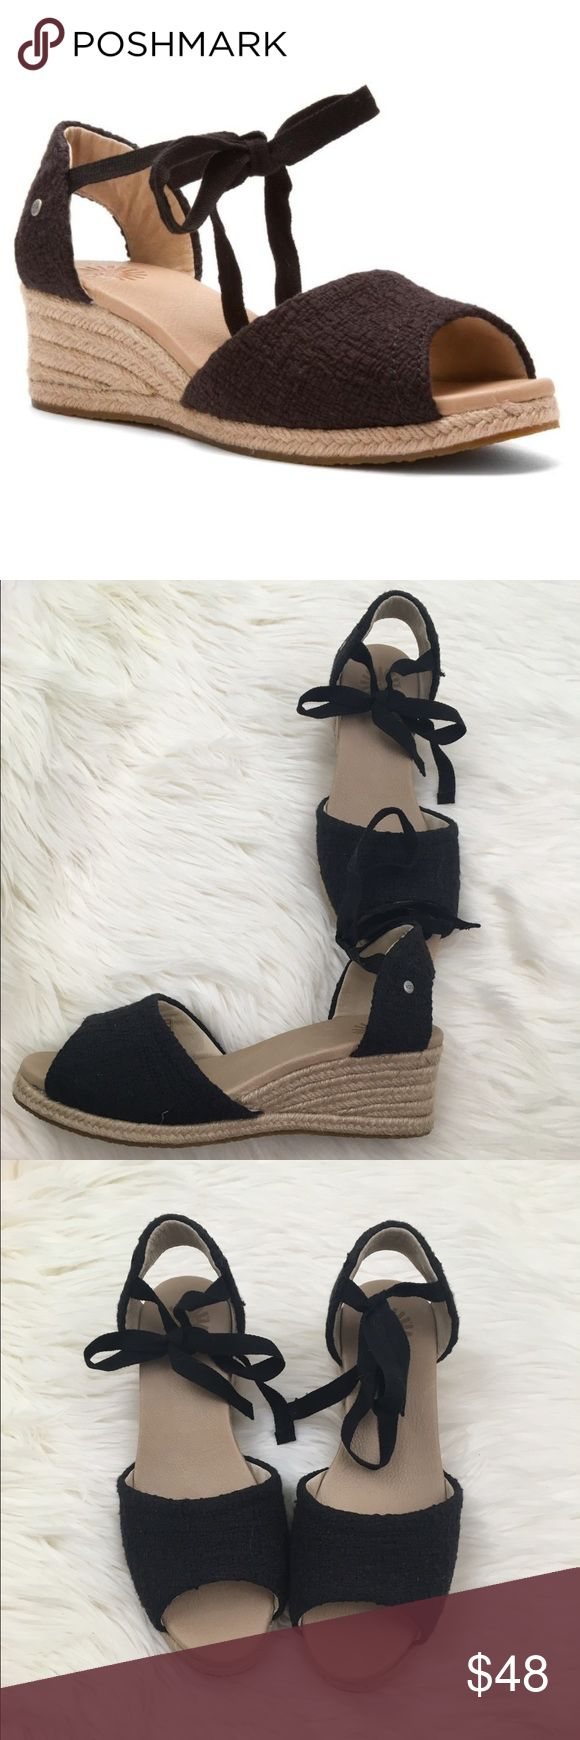 UGG Delmar Wedge Espadrilles Heels - Black Cotton UGH Australia wedge espadrilles Delmar summer sandal in black textured cotton, ankle ties peep toe, and partially open back. Great nearly new condition. UGG Shoes Espadrilles